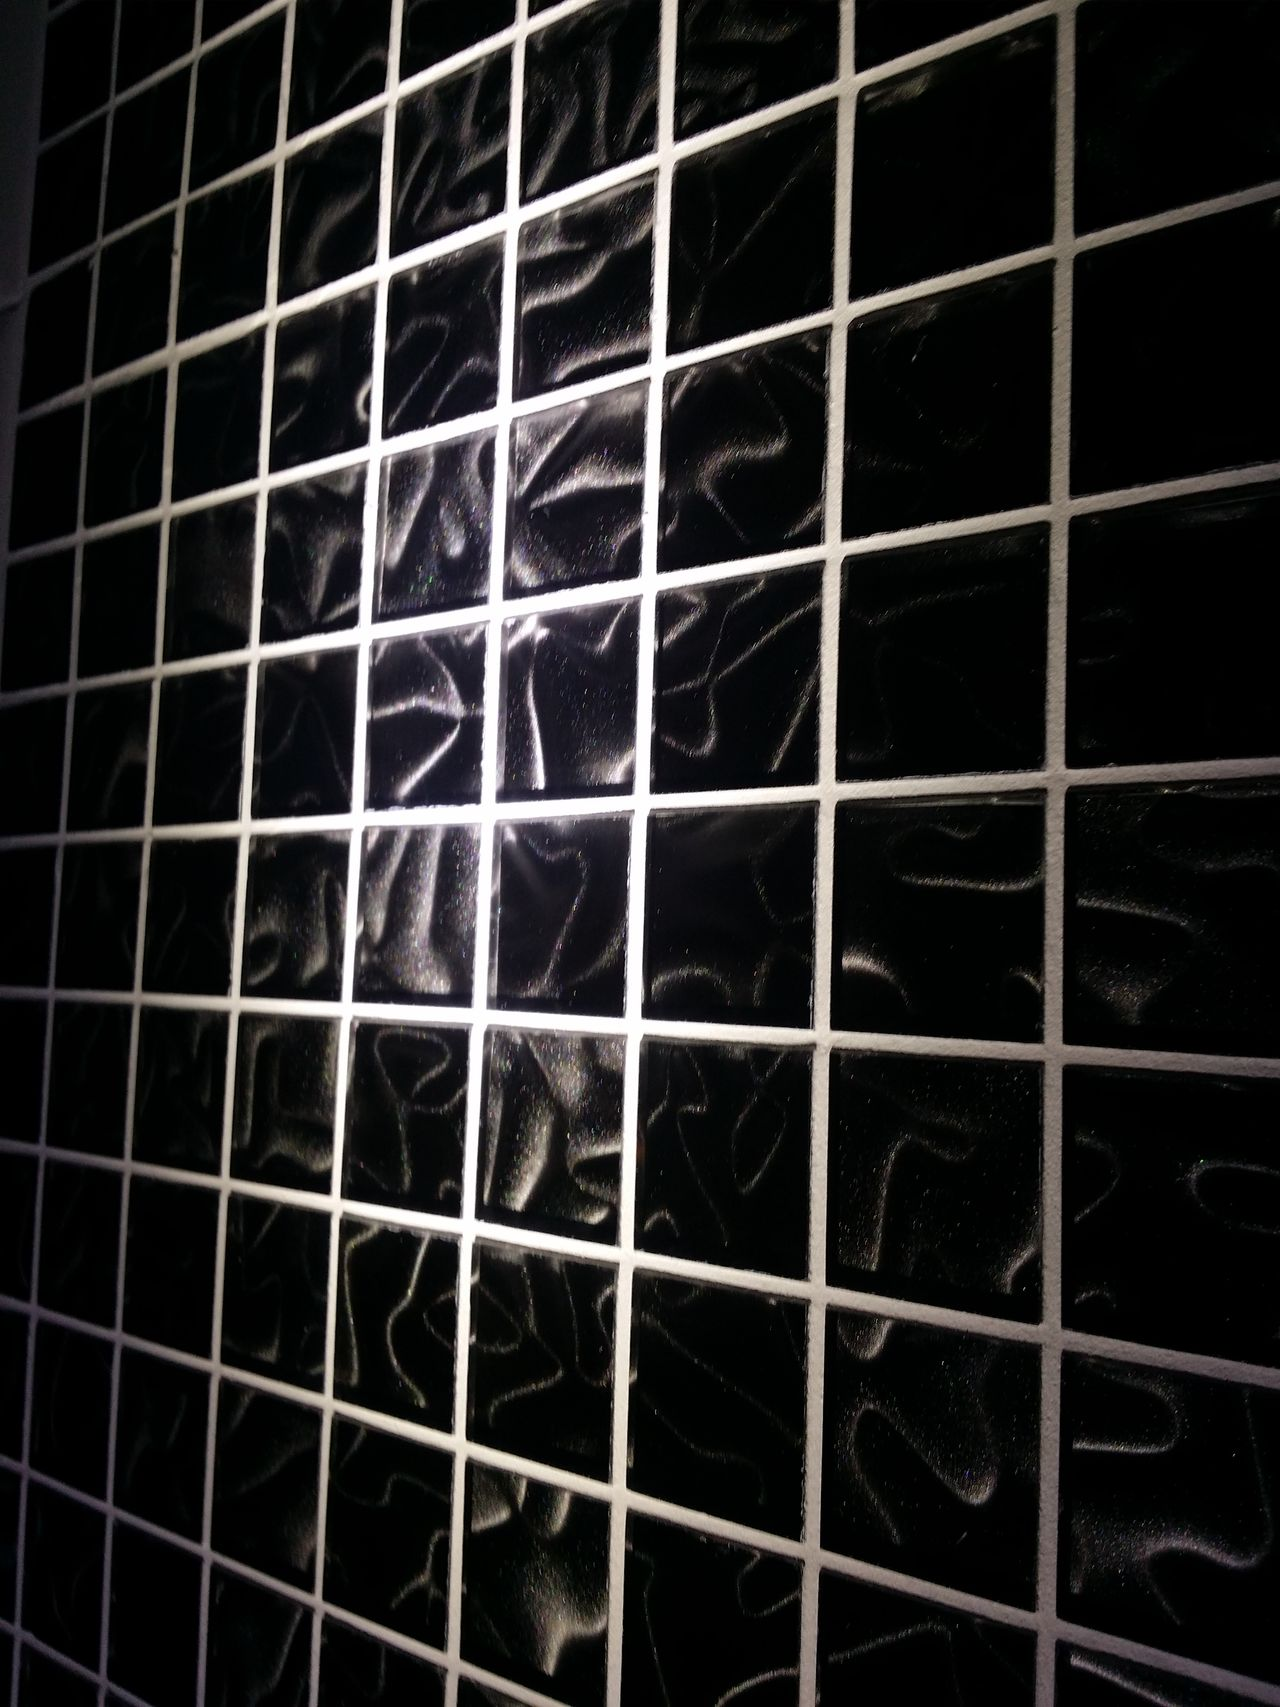 Abstract Arts Culture And Entertainment Backgrounds Close-up Day Design Detail Full Frame Geometry Home Metal Metal Grate Music No People Old Pattern Pattern Pieces Repetition Textured  Wall Window